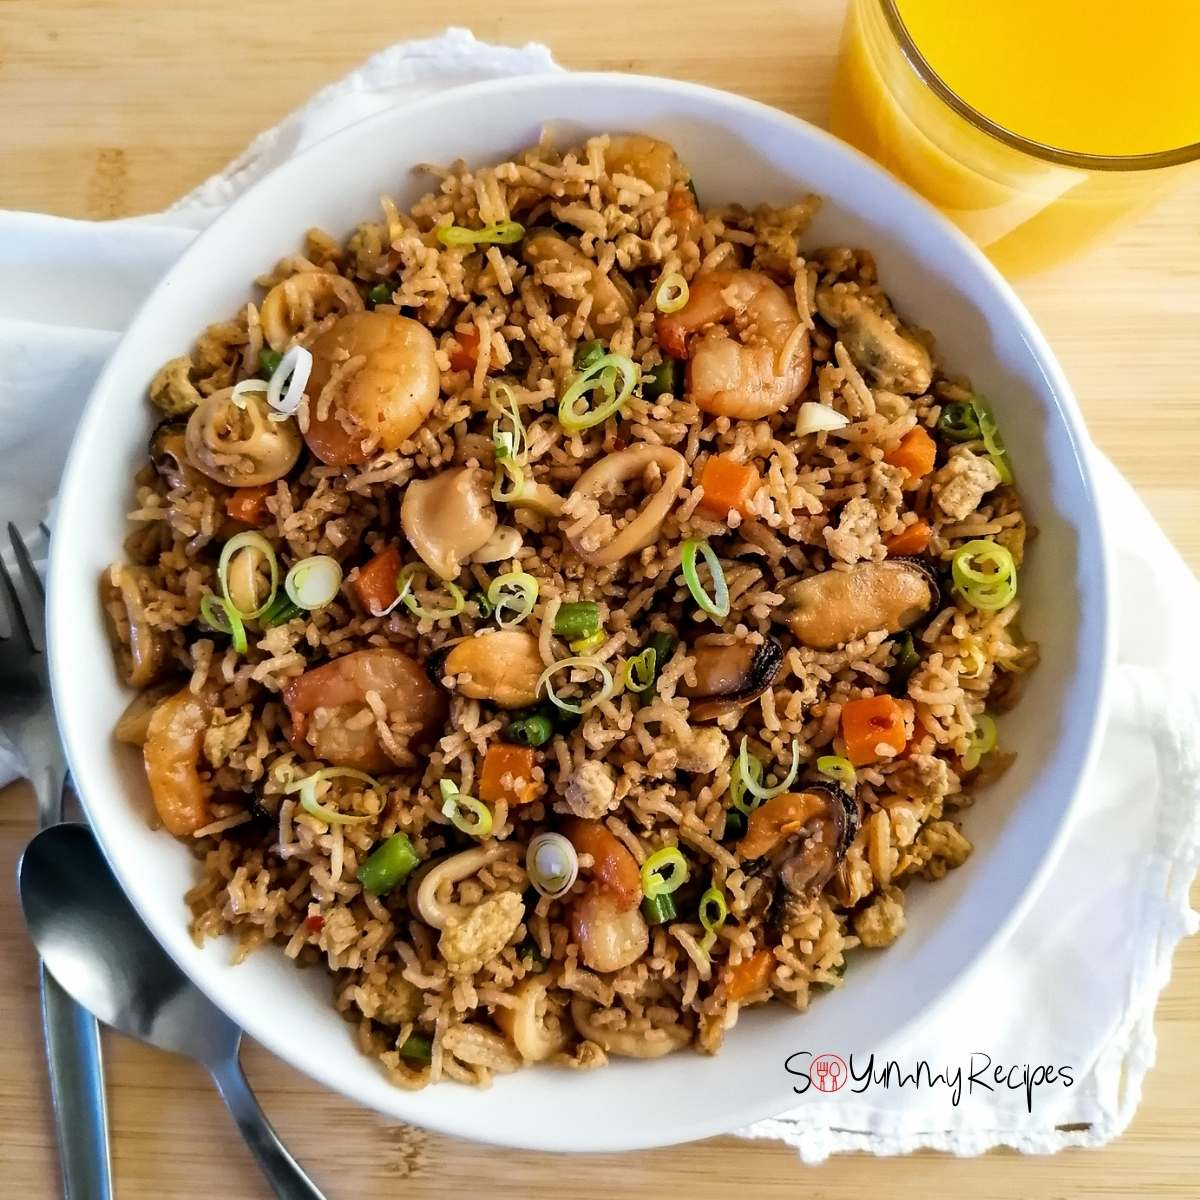 Nasi Goreng Seafood Recipe Indonesian in a white plate with a glass of orange juice on the side